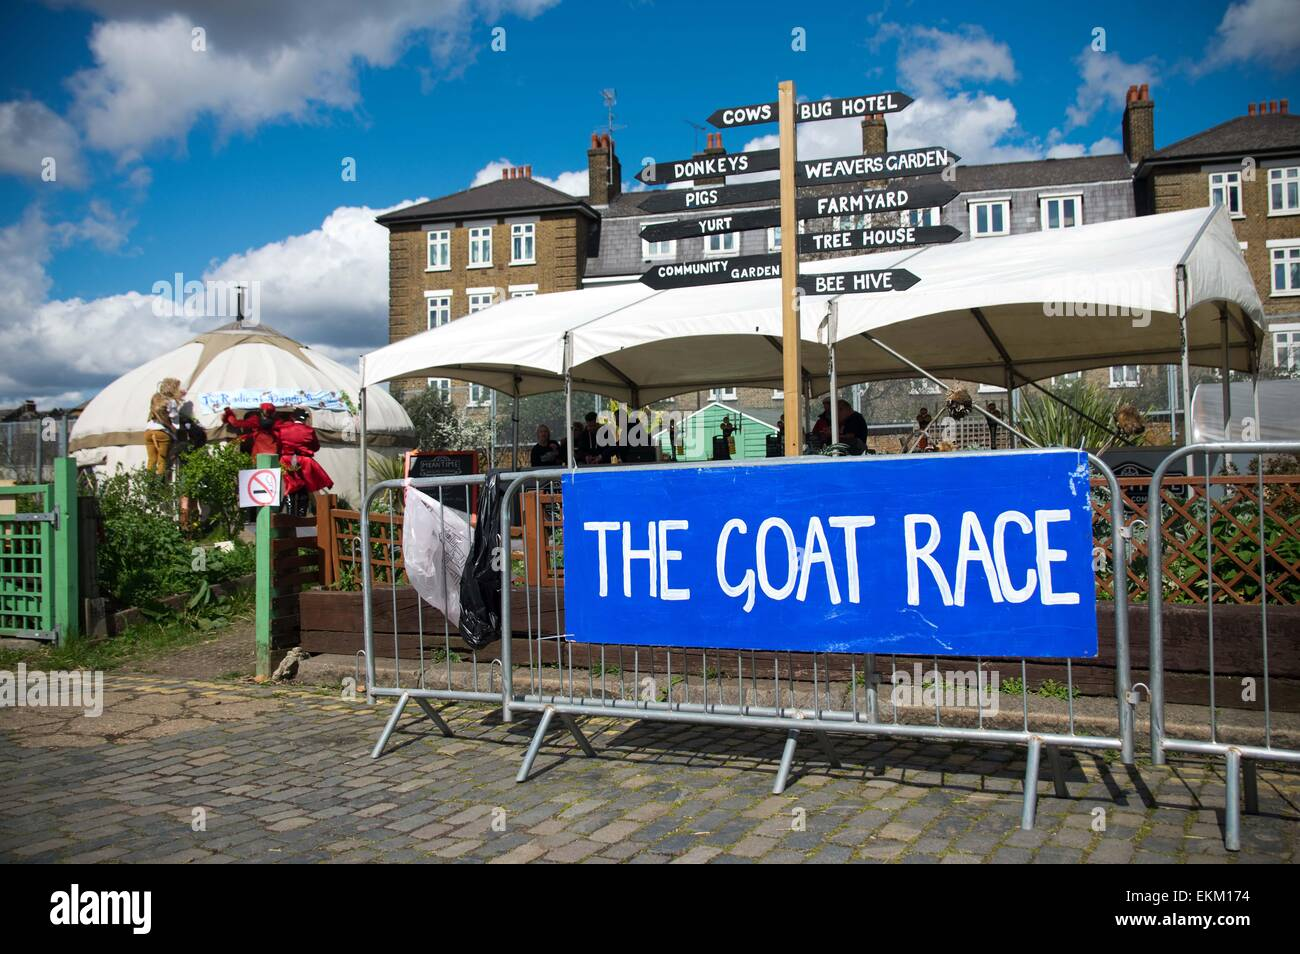 London, United Kingdom. 11th Apr, 2015. Annual goat racing event hosted at Spitalfield Farm in London. Credit:  - Stock Image